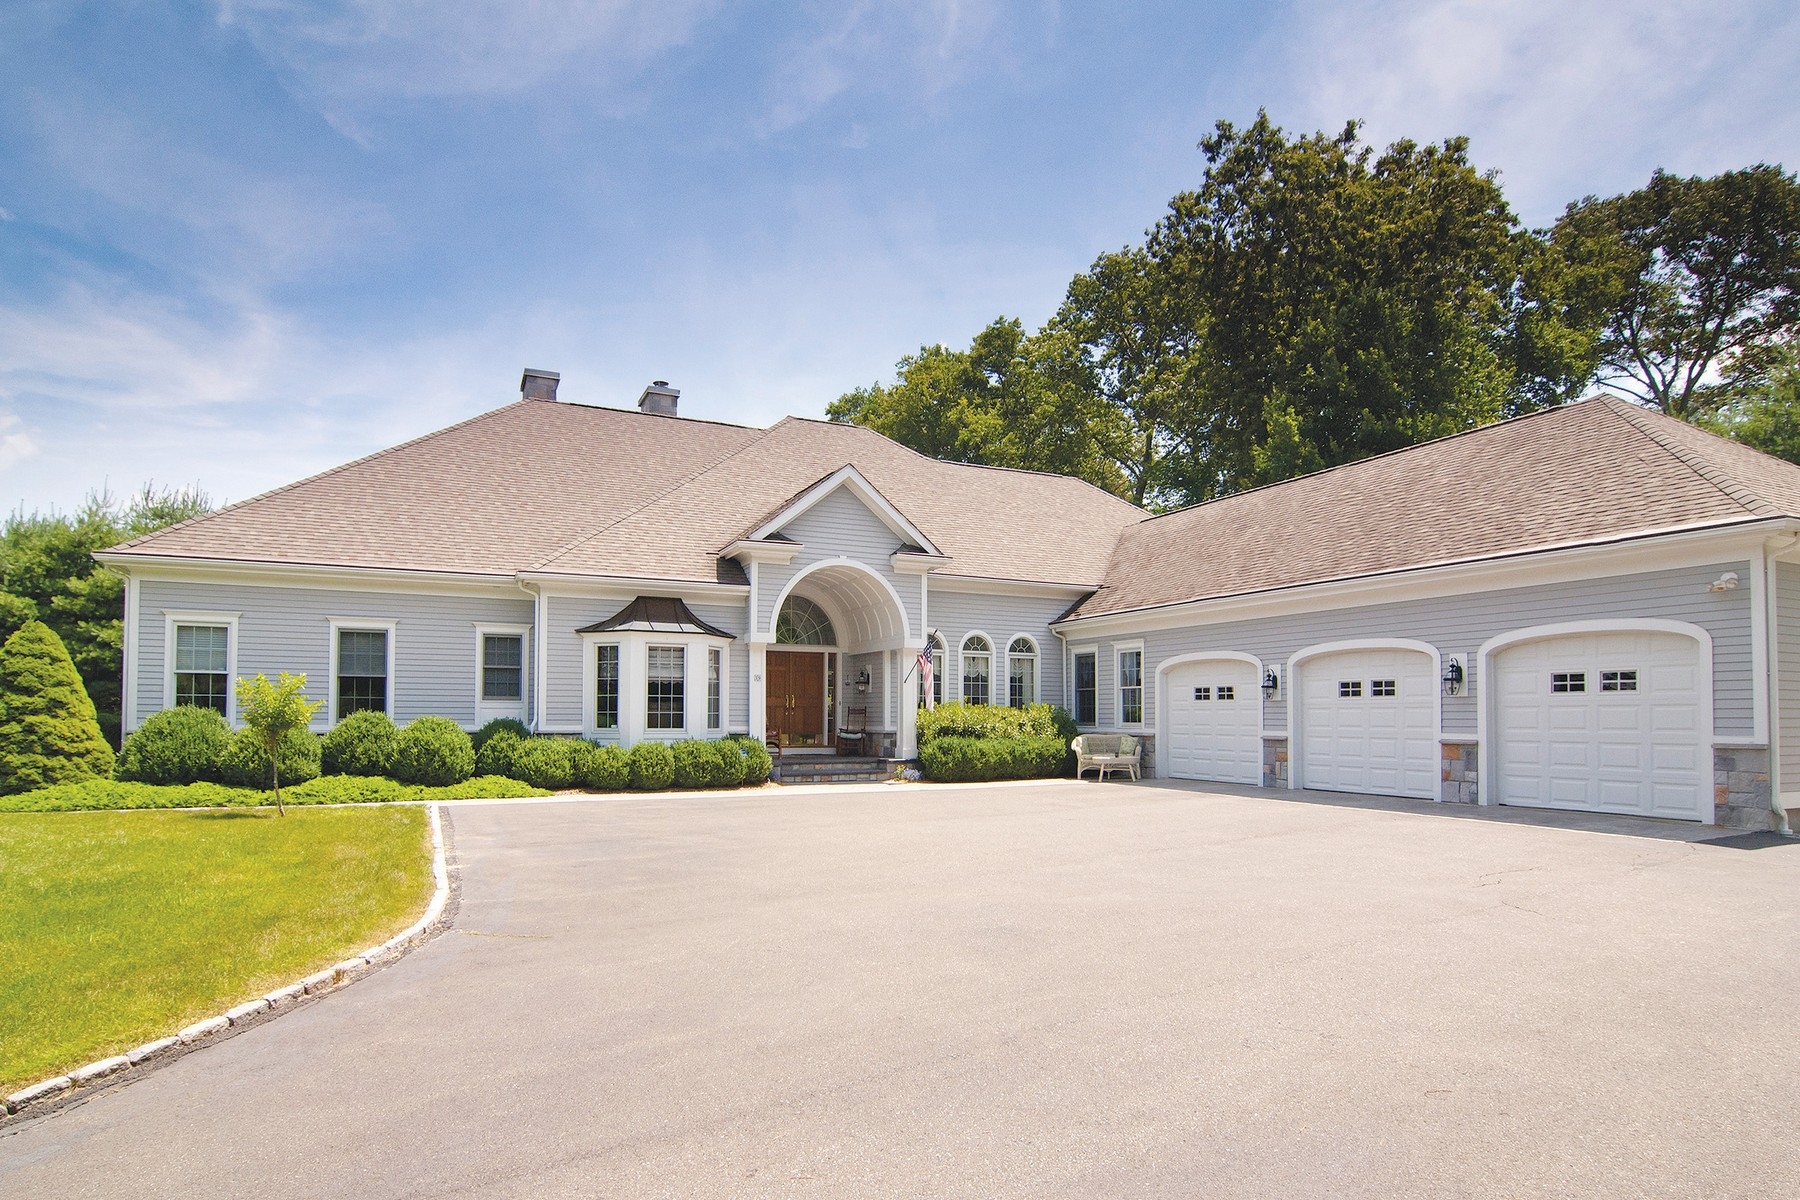 Single Family Home for Sale at Coastal Style Ranch 39 Winterberry Rd Deep River, Connecticut 06417 United States